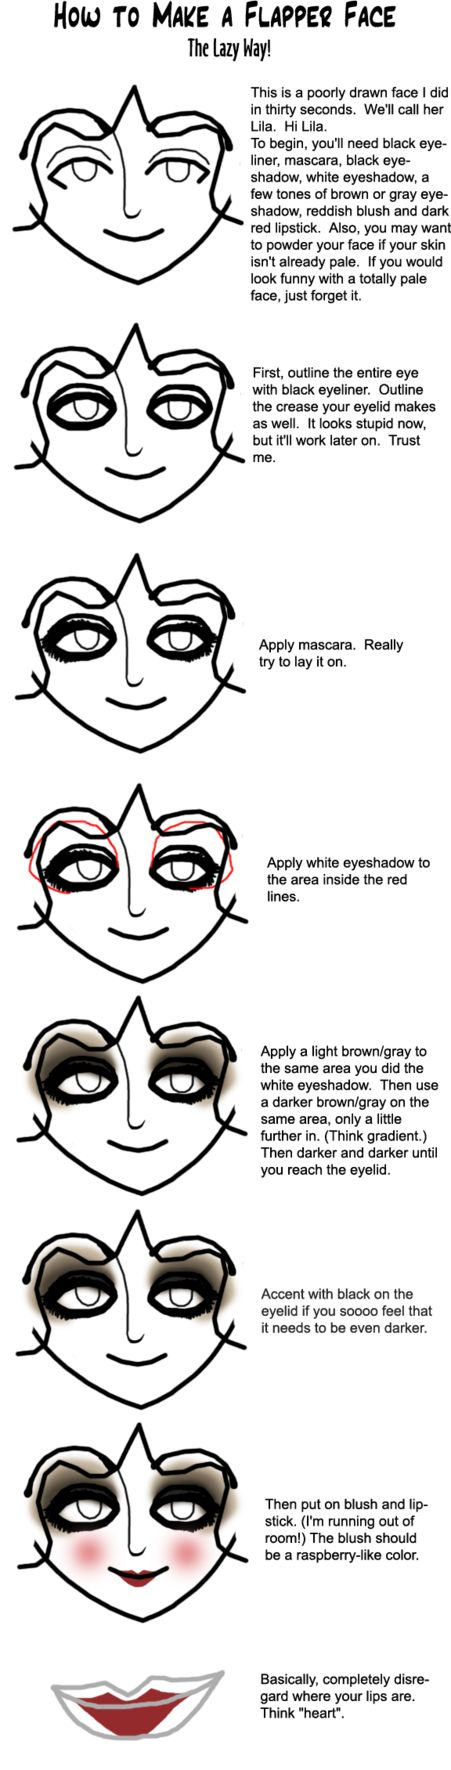 Fudging Flapper Makeup--easy step-by-step instructions. I was able to recreate this look with $11 worth of drugstore cosmetics ;)